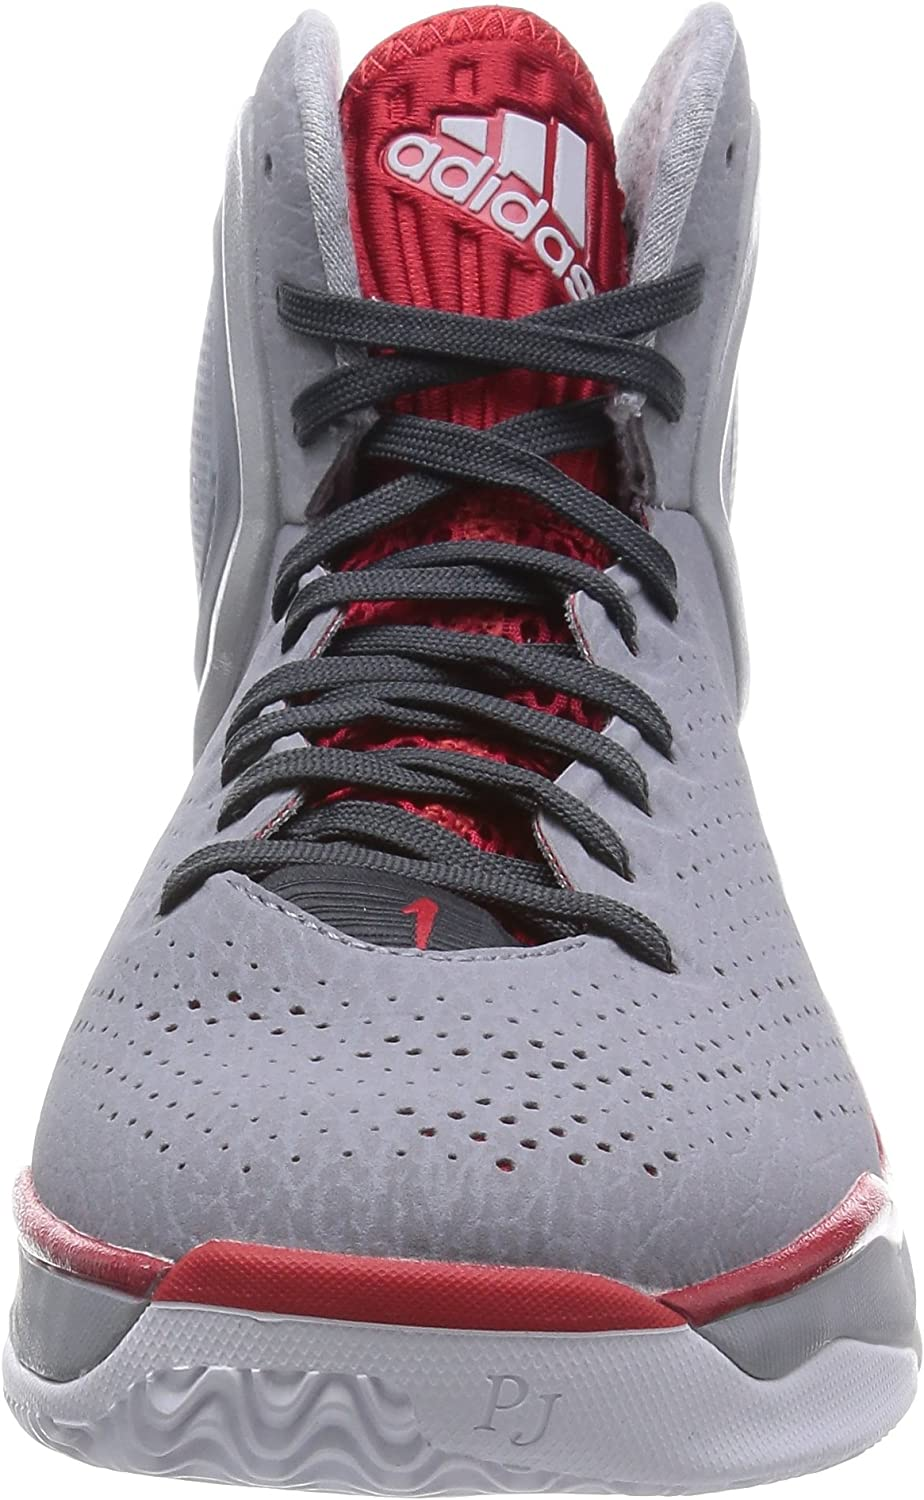 adidas D Rose 5 Boost Mens Basketball Sneakers//Shoes